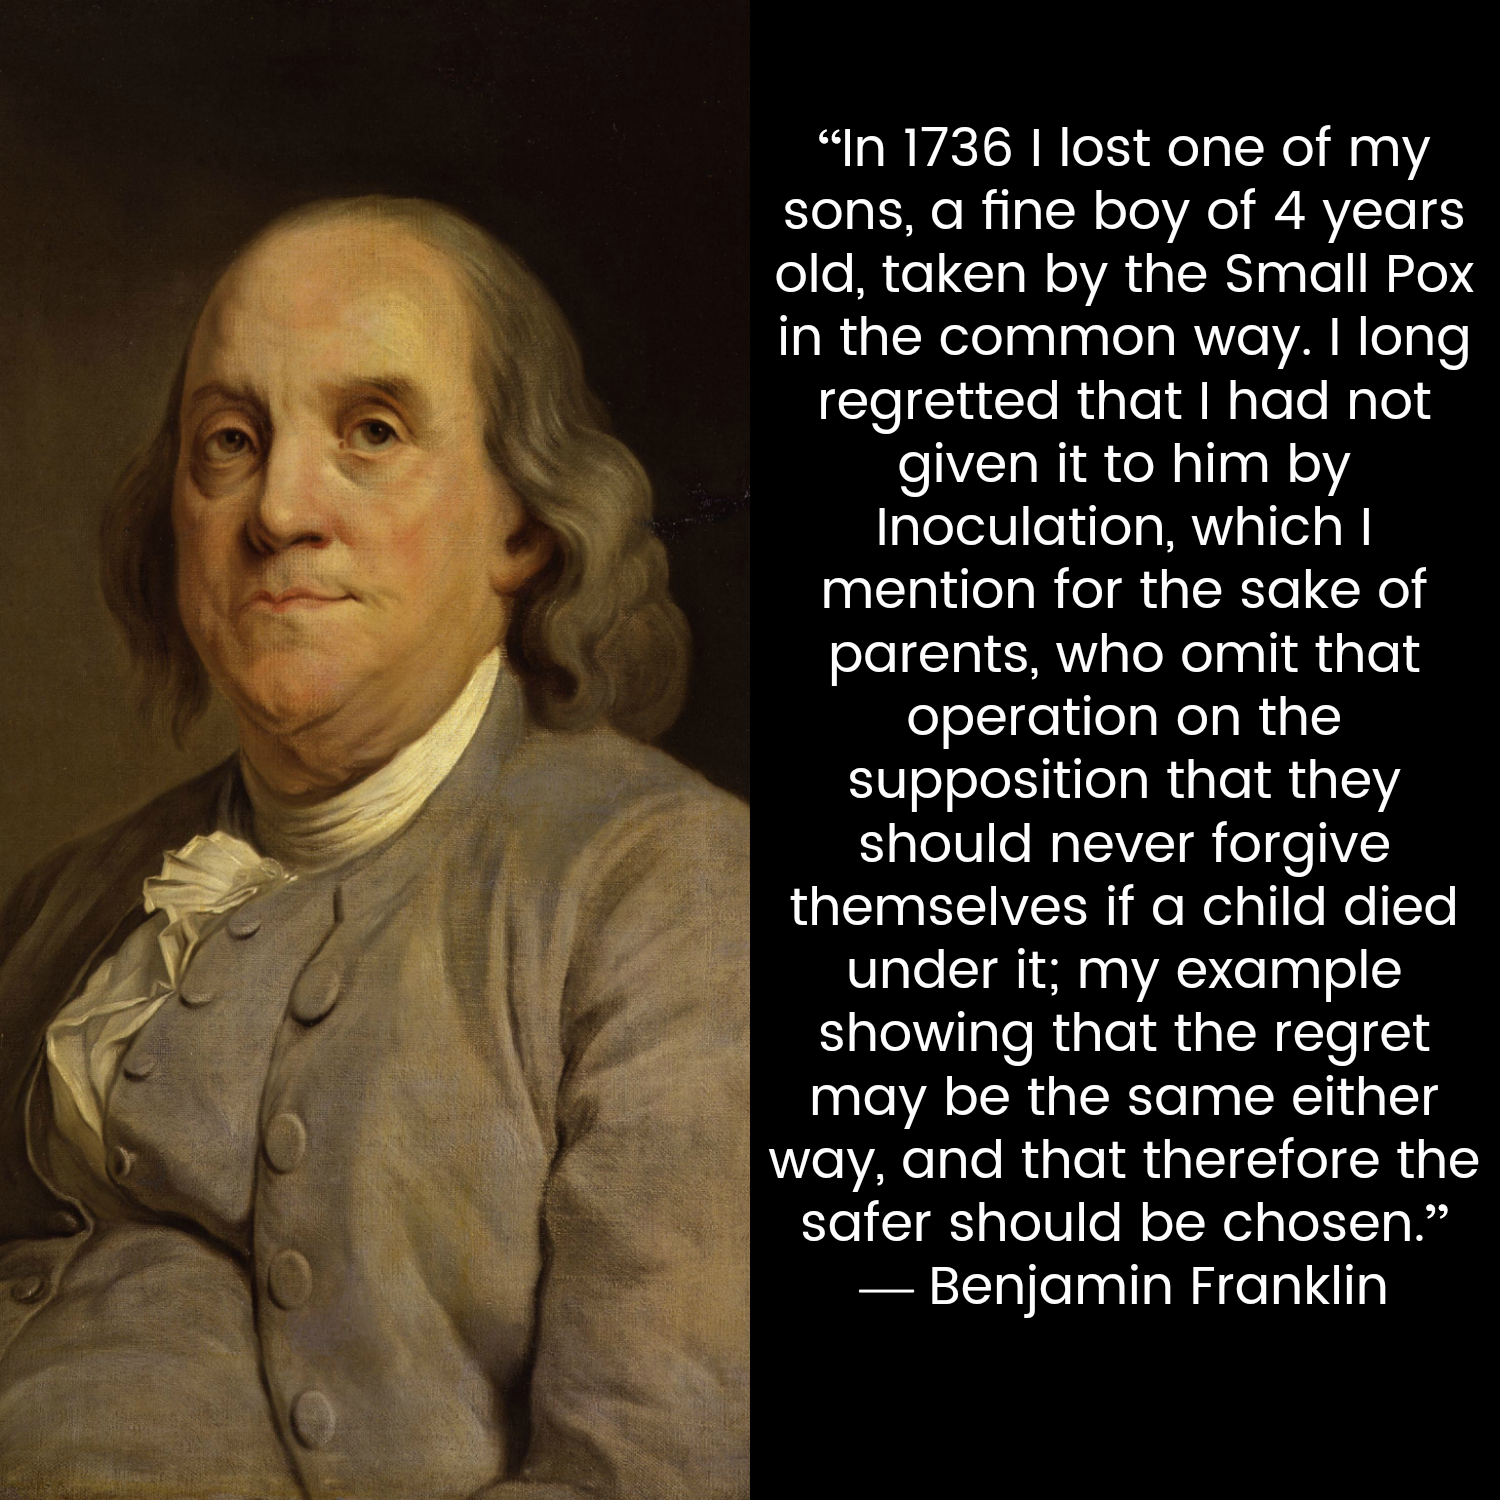 """""""In 1736 I lost one of my sons, a fine boy of 4 years old, taken by the Small Pox in the common way. I long regretted that I had not given it to him by Inoculation, which I mention for the sake of parents, who omit that operation on the supposition that they should never forgive themselves if a child died under it; my example showing that the regret may be the same either way, and that therefore the safer should be chosen."""" — Benjamin Franklin, quoted in Franklin on Franklin by Paul Zall"""